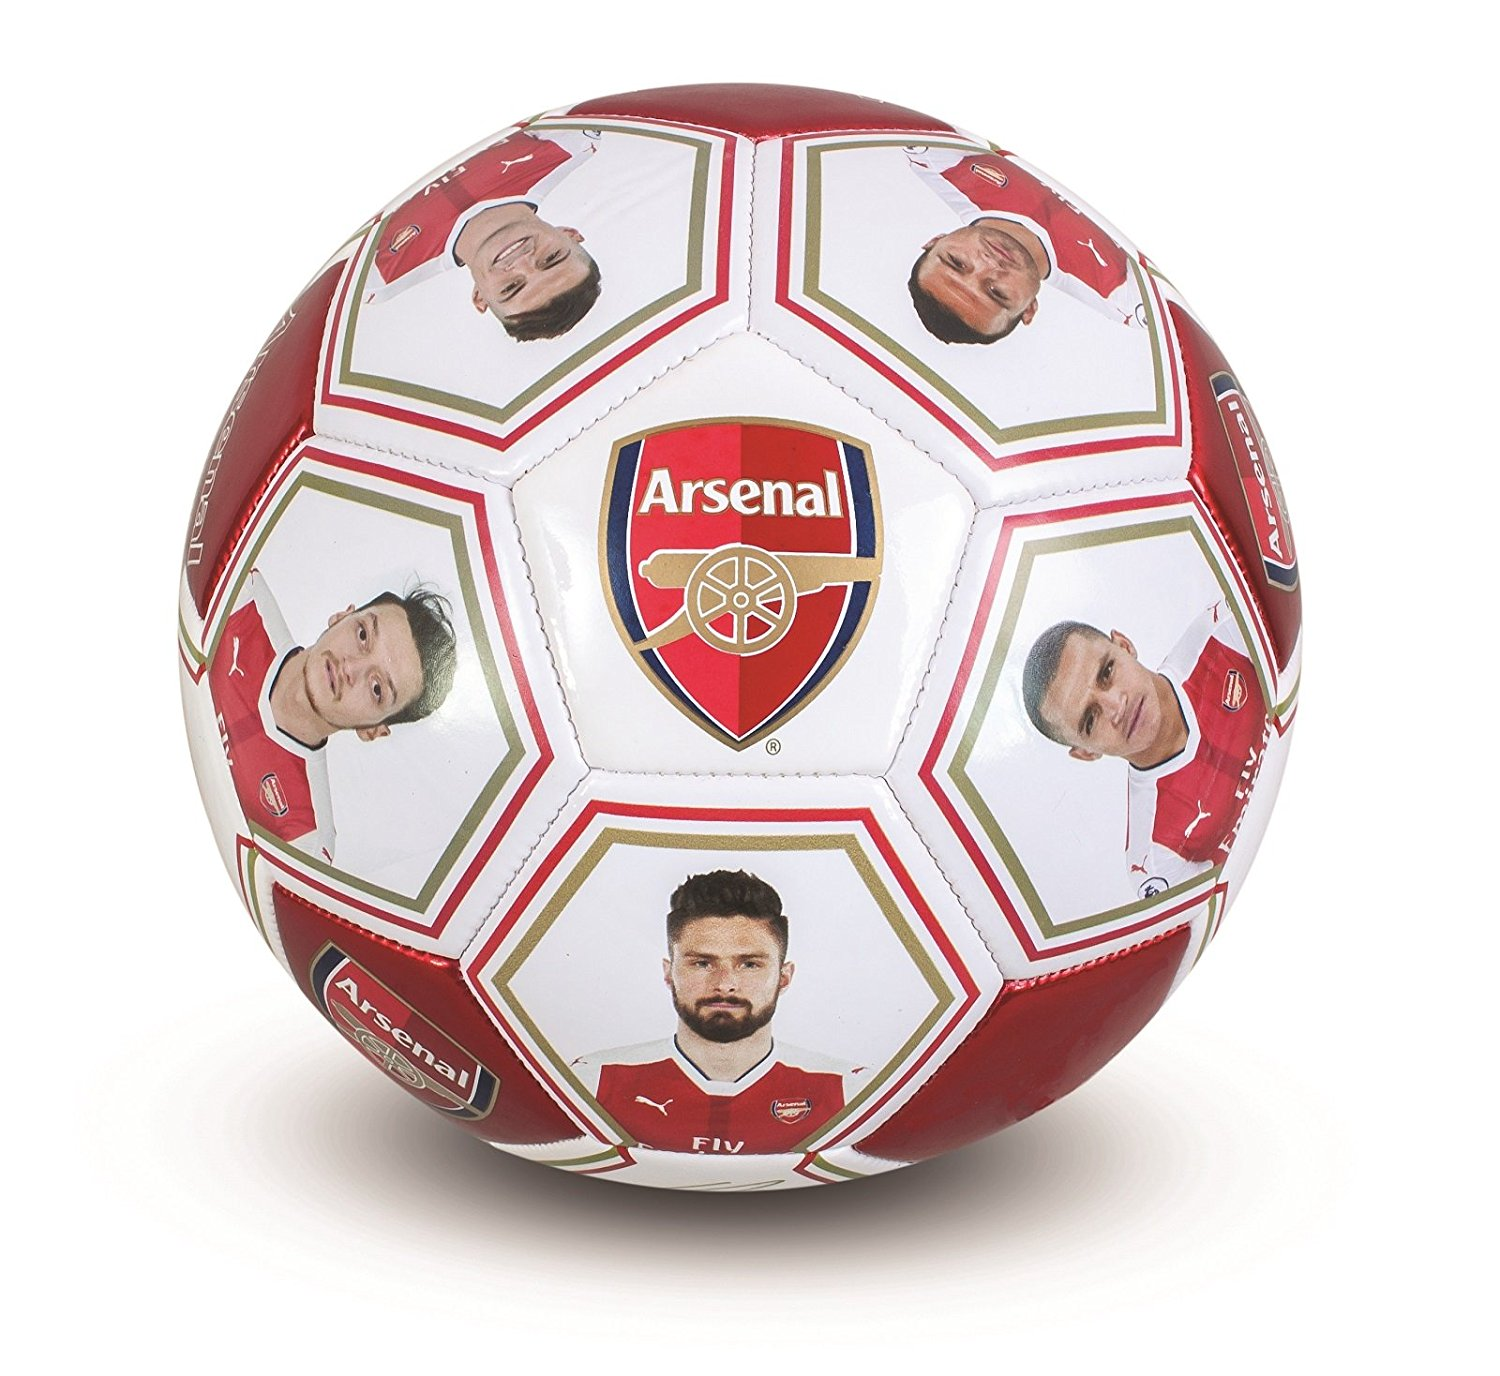 Arsenal FC Official Gift Size 5 Player Photo & Signature Football